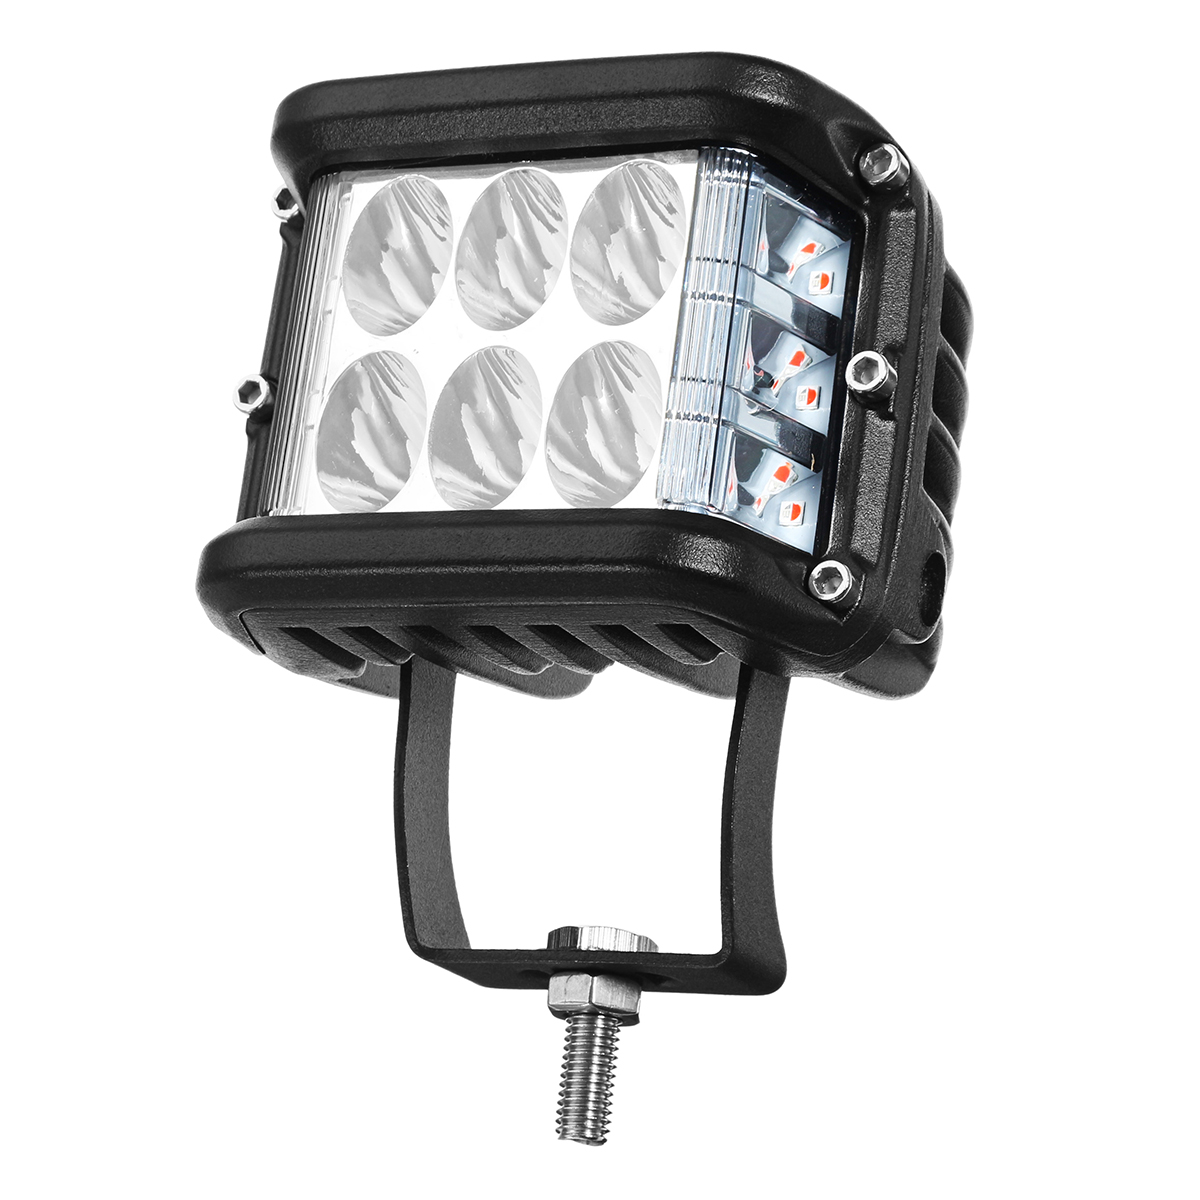 4Inch LED Work Light Bar ...